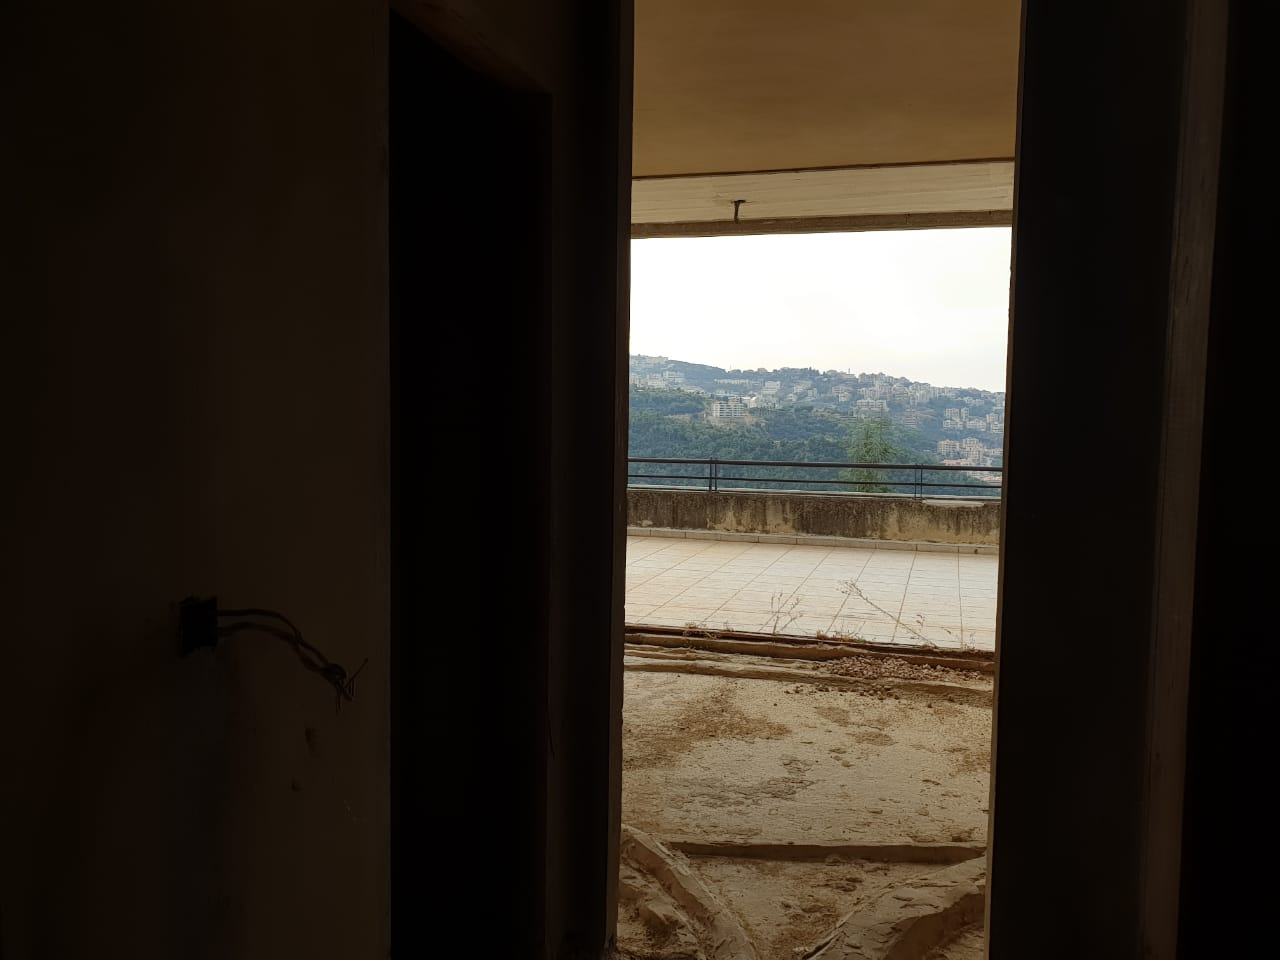 Chalet for sale in Jeita, Real estate in jeita, Buy sell properties in Jeita